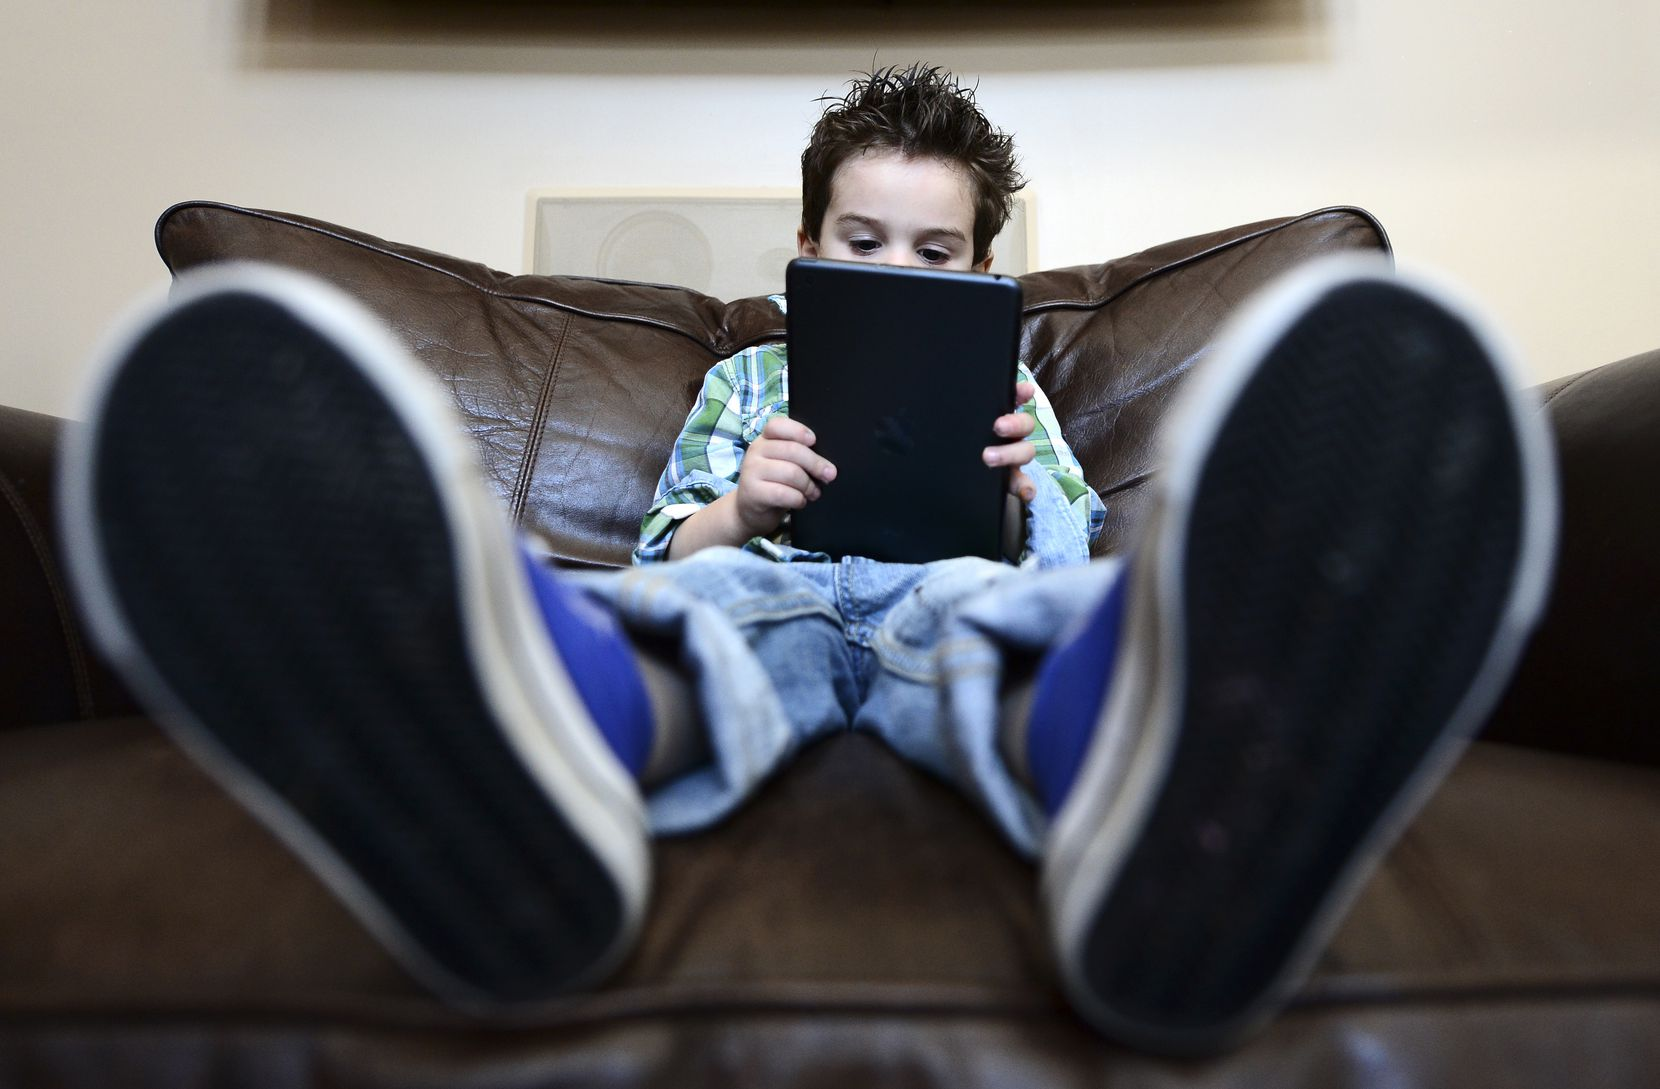 Limiting screen time is one way author Katherine Reynolds Lewis suggests parents can increase family bonding and reduce bad behavior.